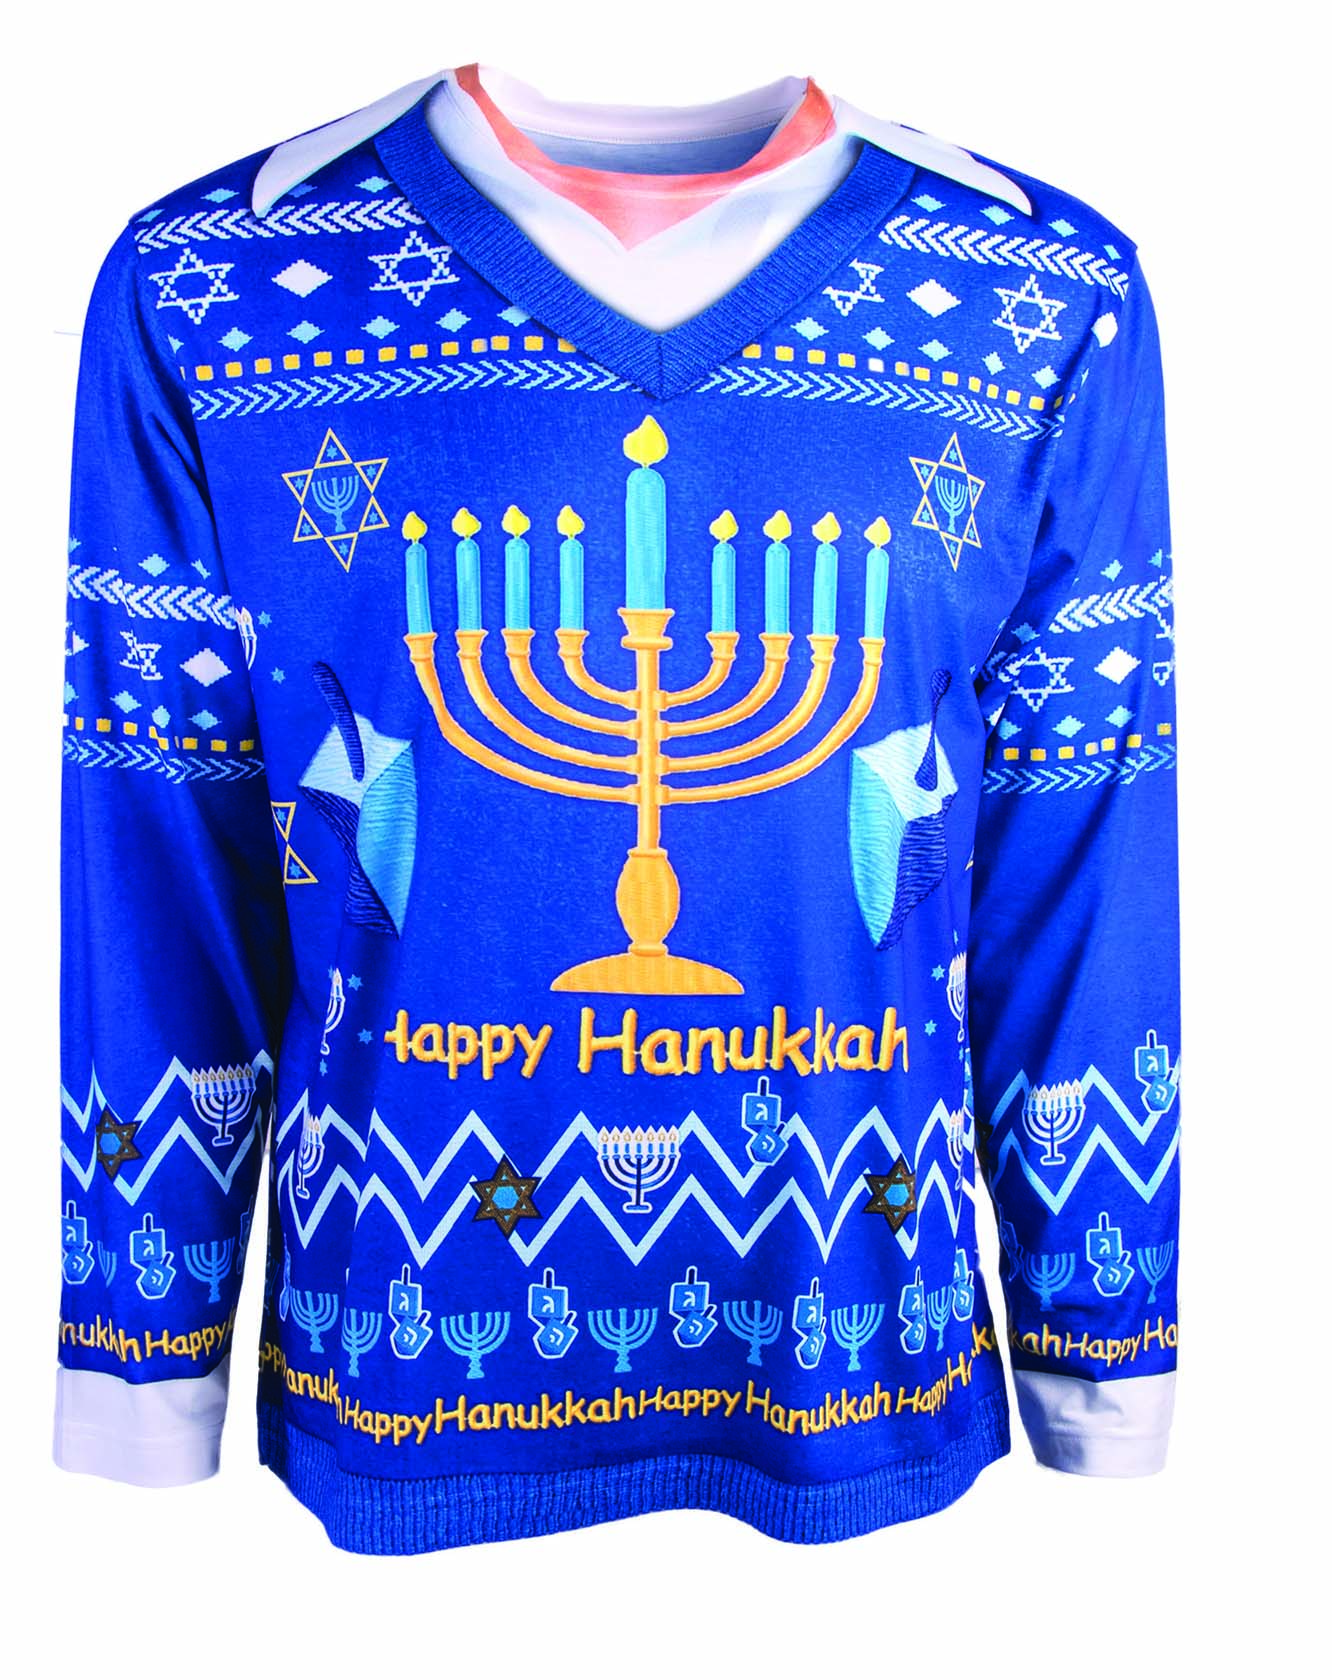 Jewish Christmas Sweater.Details About Ugly Christmas Sweater Happy Chanukah Hanukkah Jewish Holiday Adult Unisex Shirt